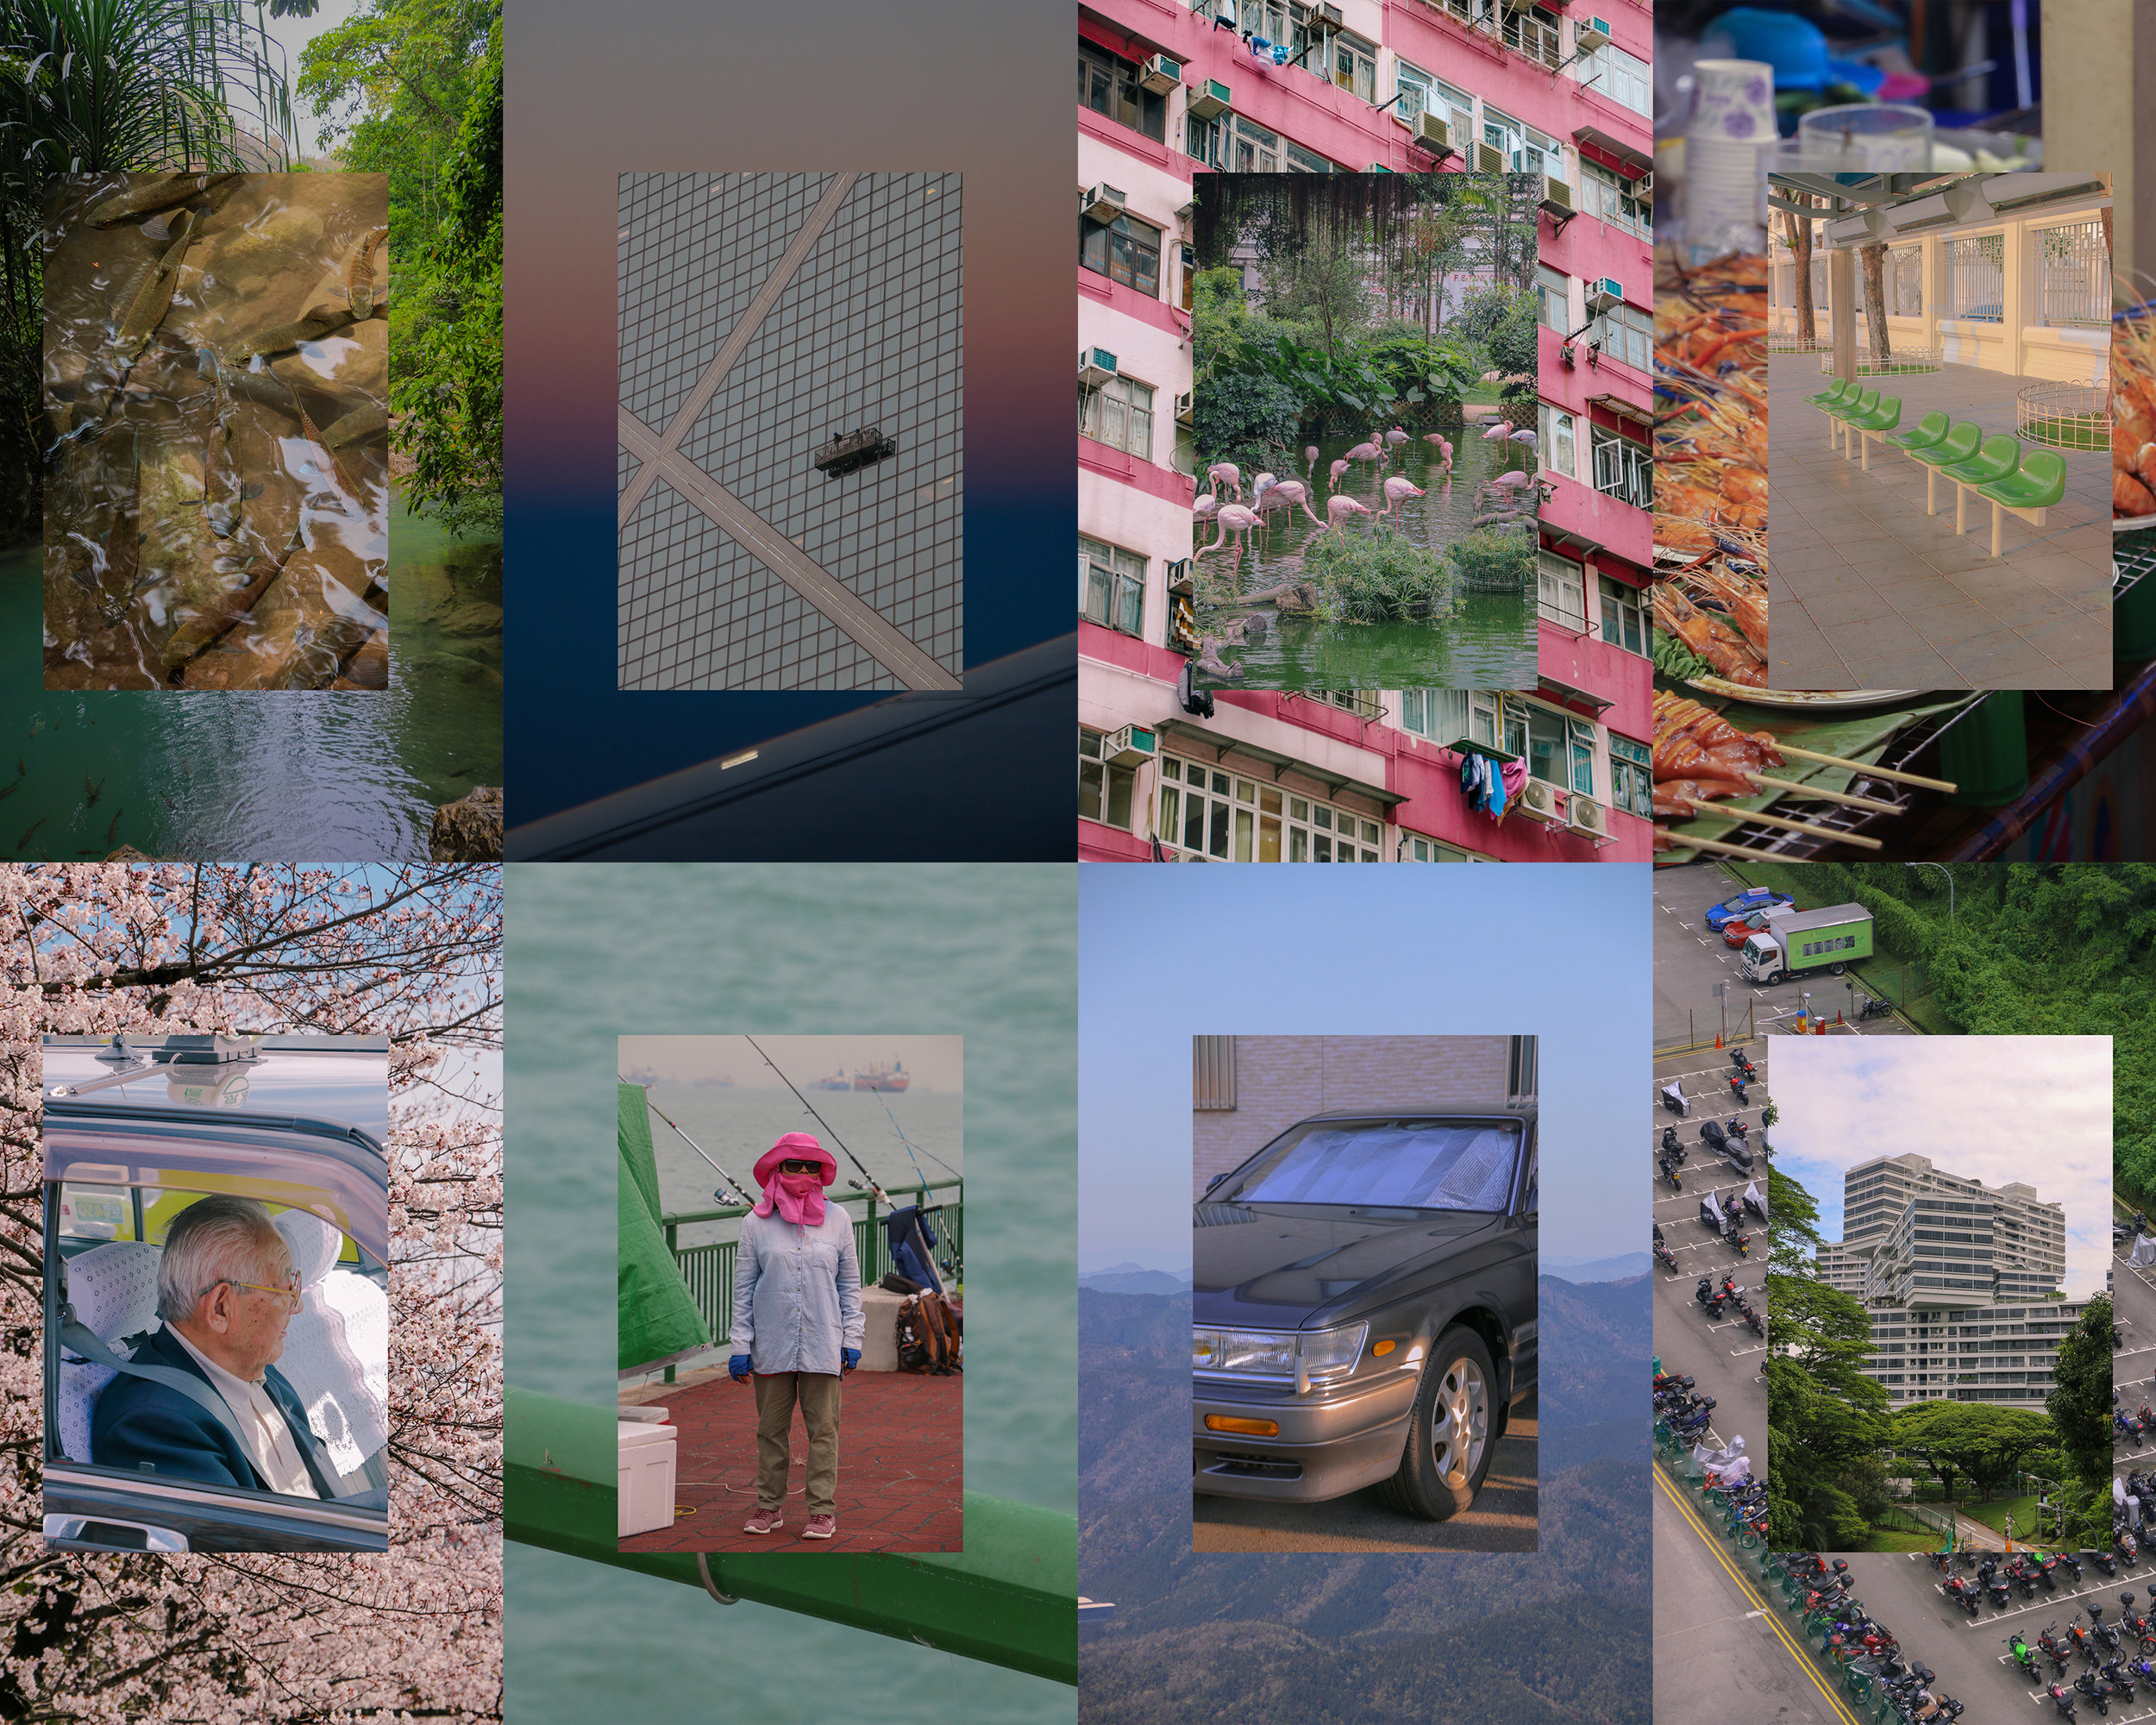 Abroad Collage - A series of images shot in Japan, Thailand, Hong Kong, and Singapore. 2019.